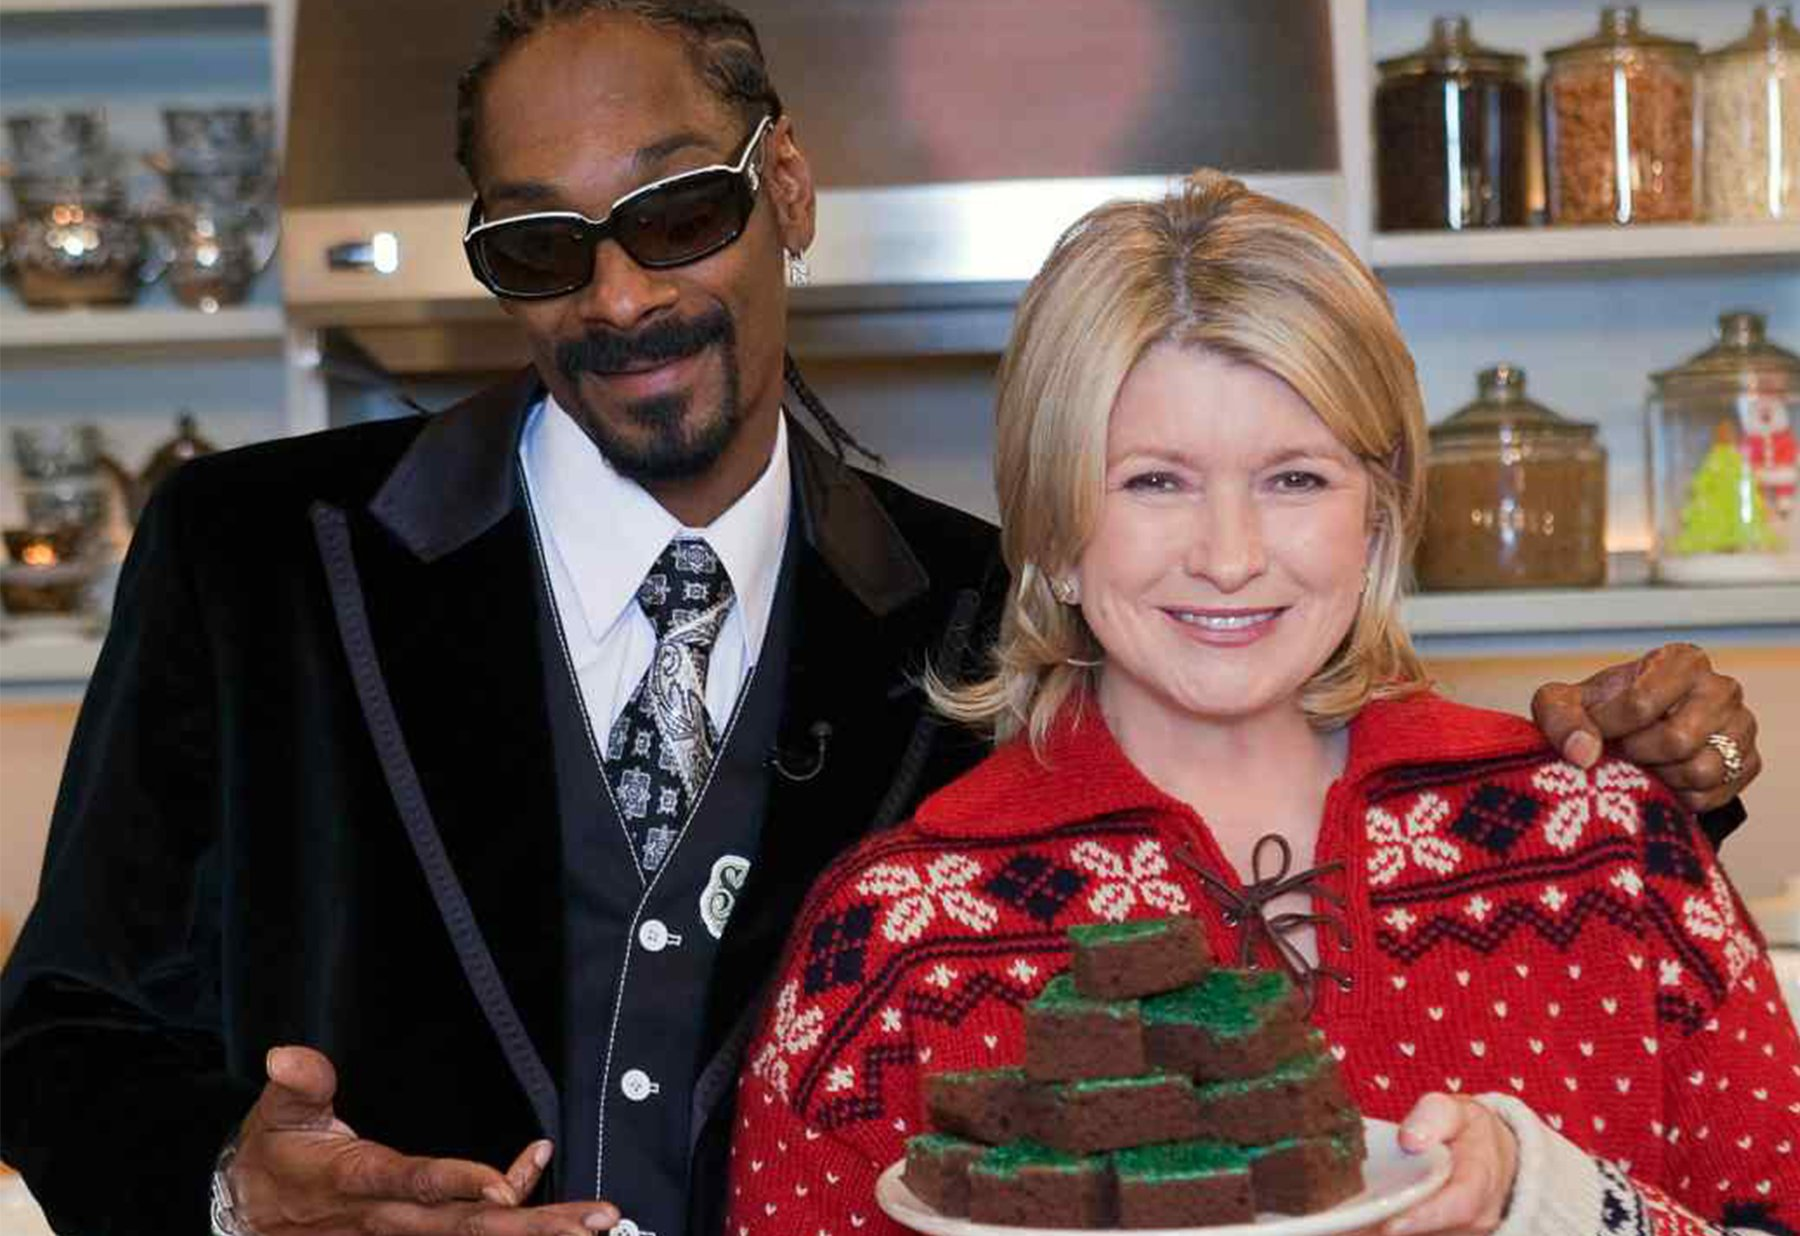 THE TRUTH ABOUT SNOOP DOG'S RELATIONSHIP WITH MARTHA STEWART